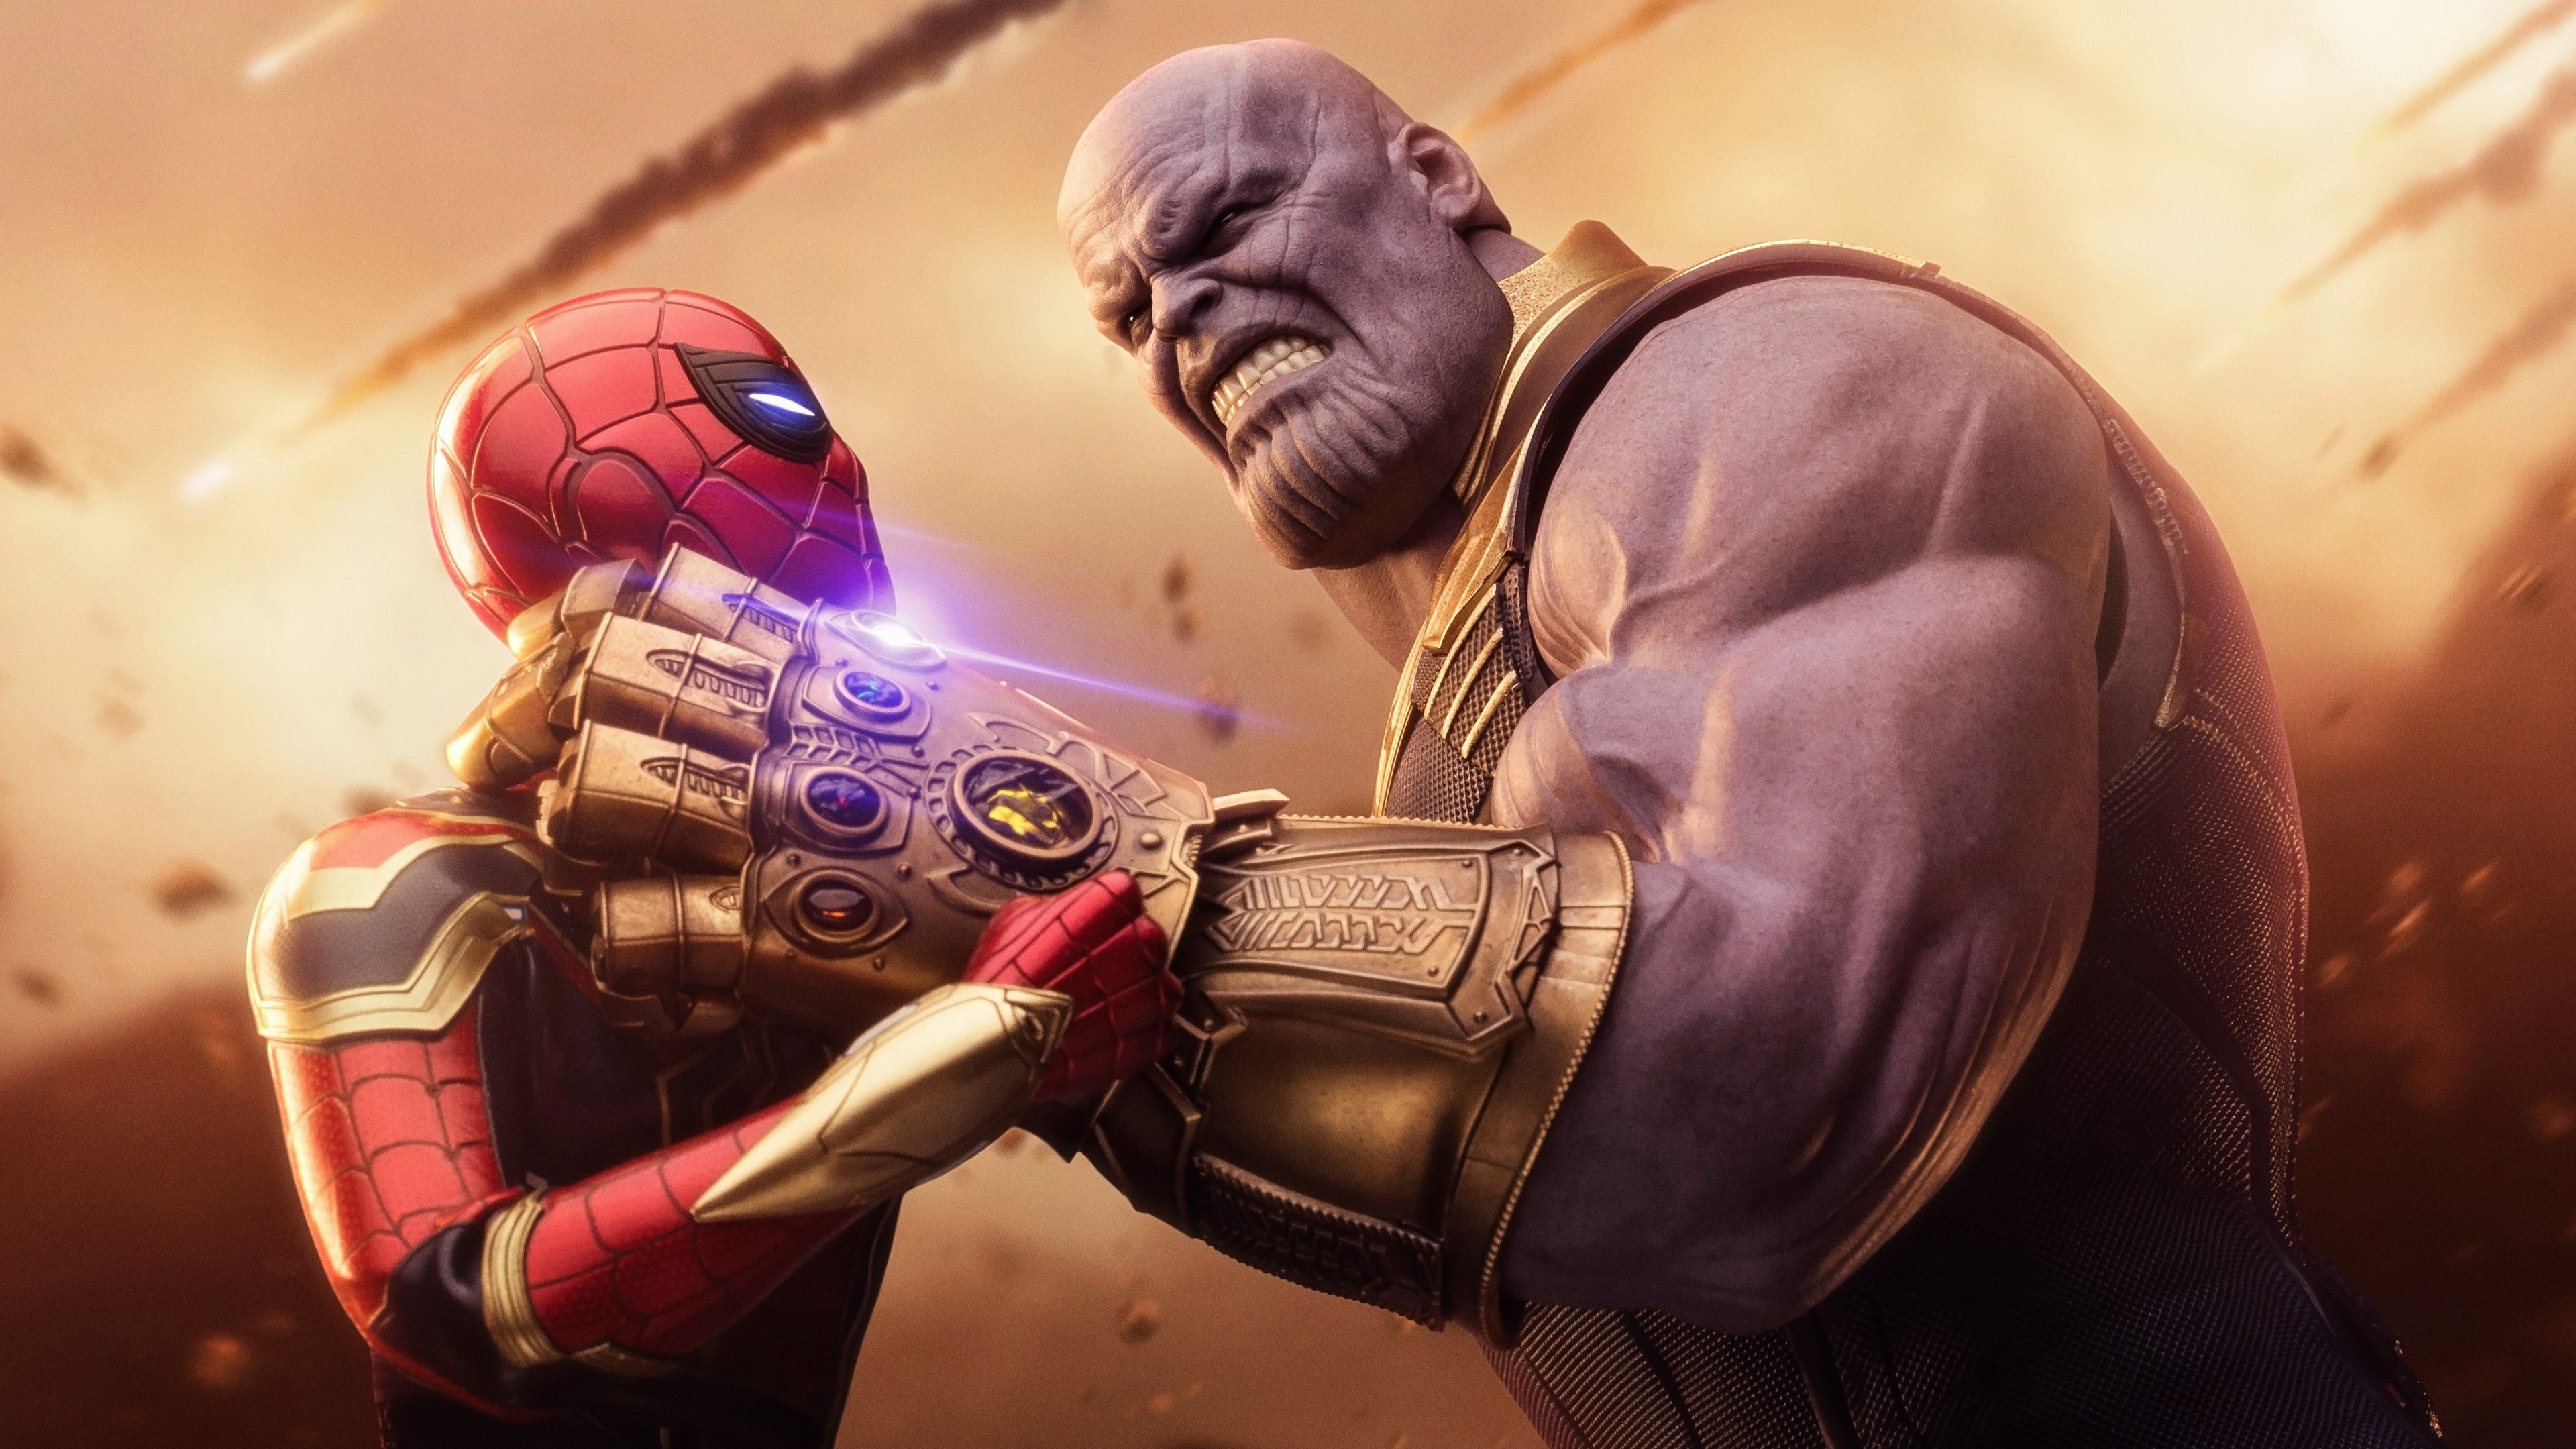 Wallpaper 4k Spiderman Thanos Avengers Infinity War 4k 4k